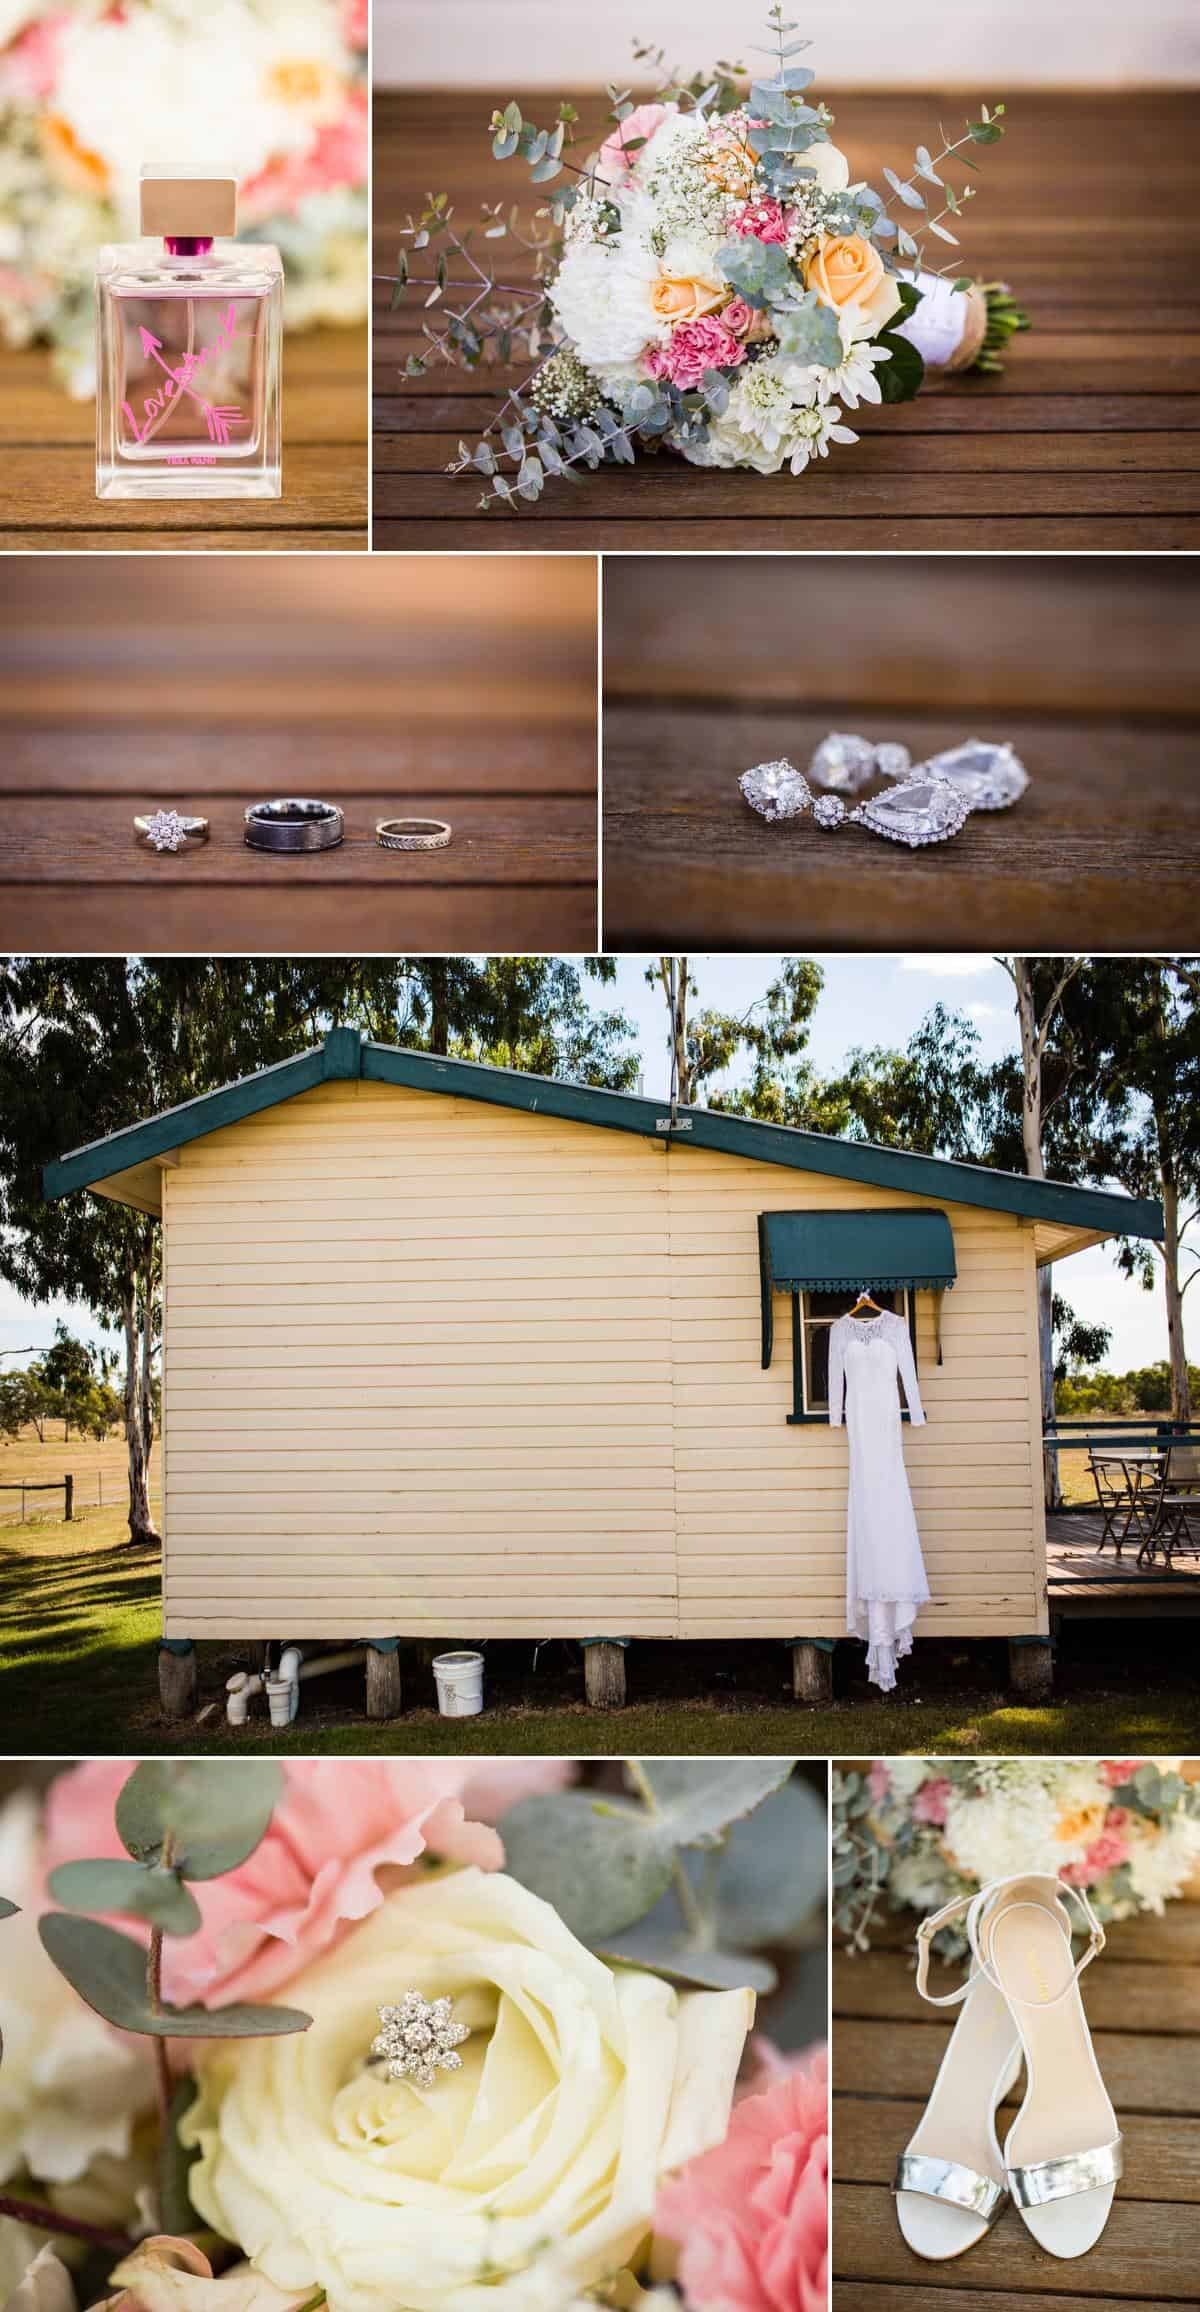 Kate + Brogan The Woolshed wedding www.benandhopeweddings.com.au 1